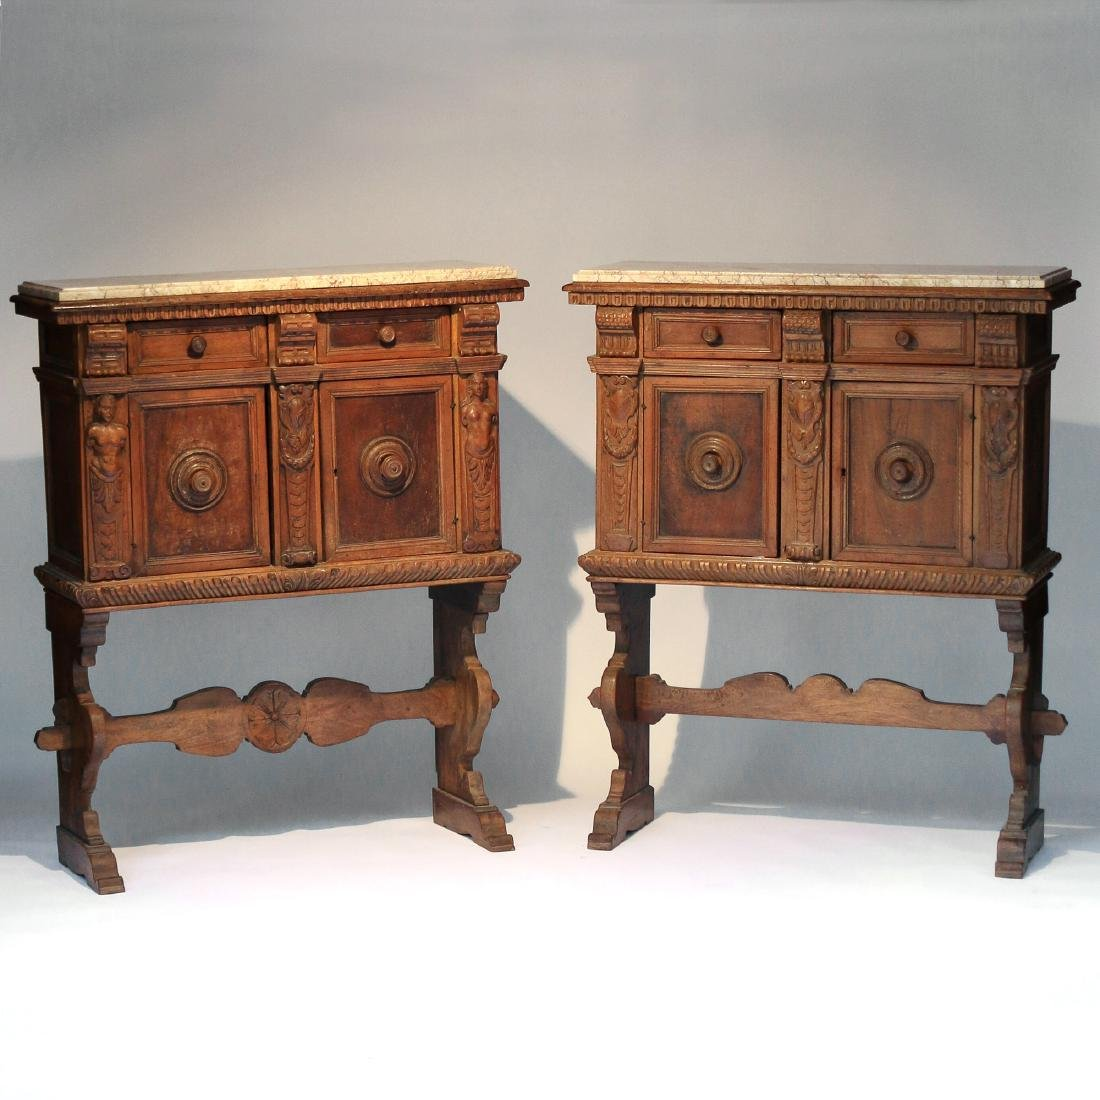 PAIR ITALIAN BAROQUE CARVED WALNUT CABINETS - 2